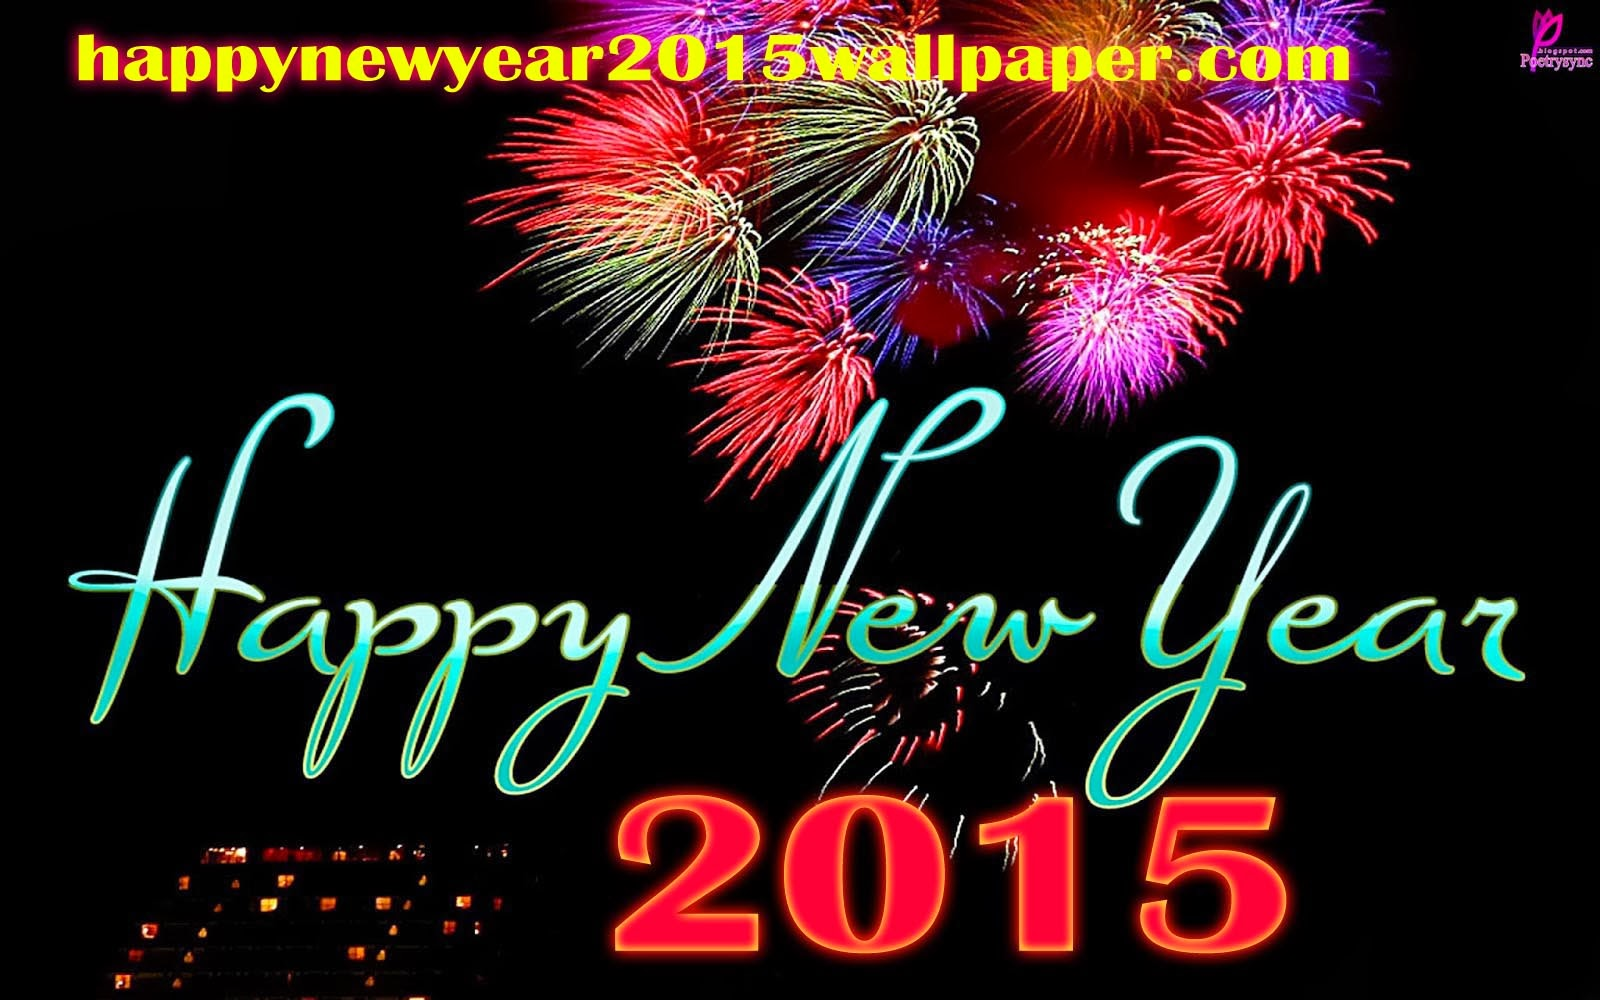 for happy new year 2015 wallpaper new year wishes wallpapers new year